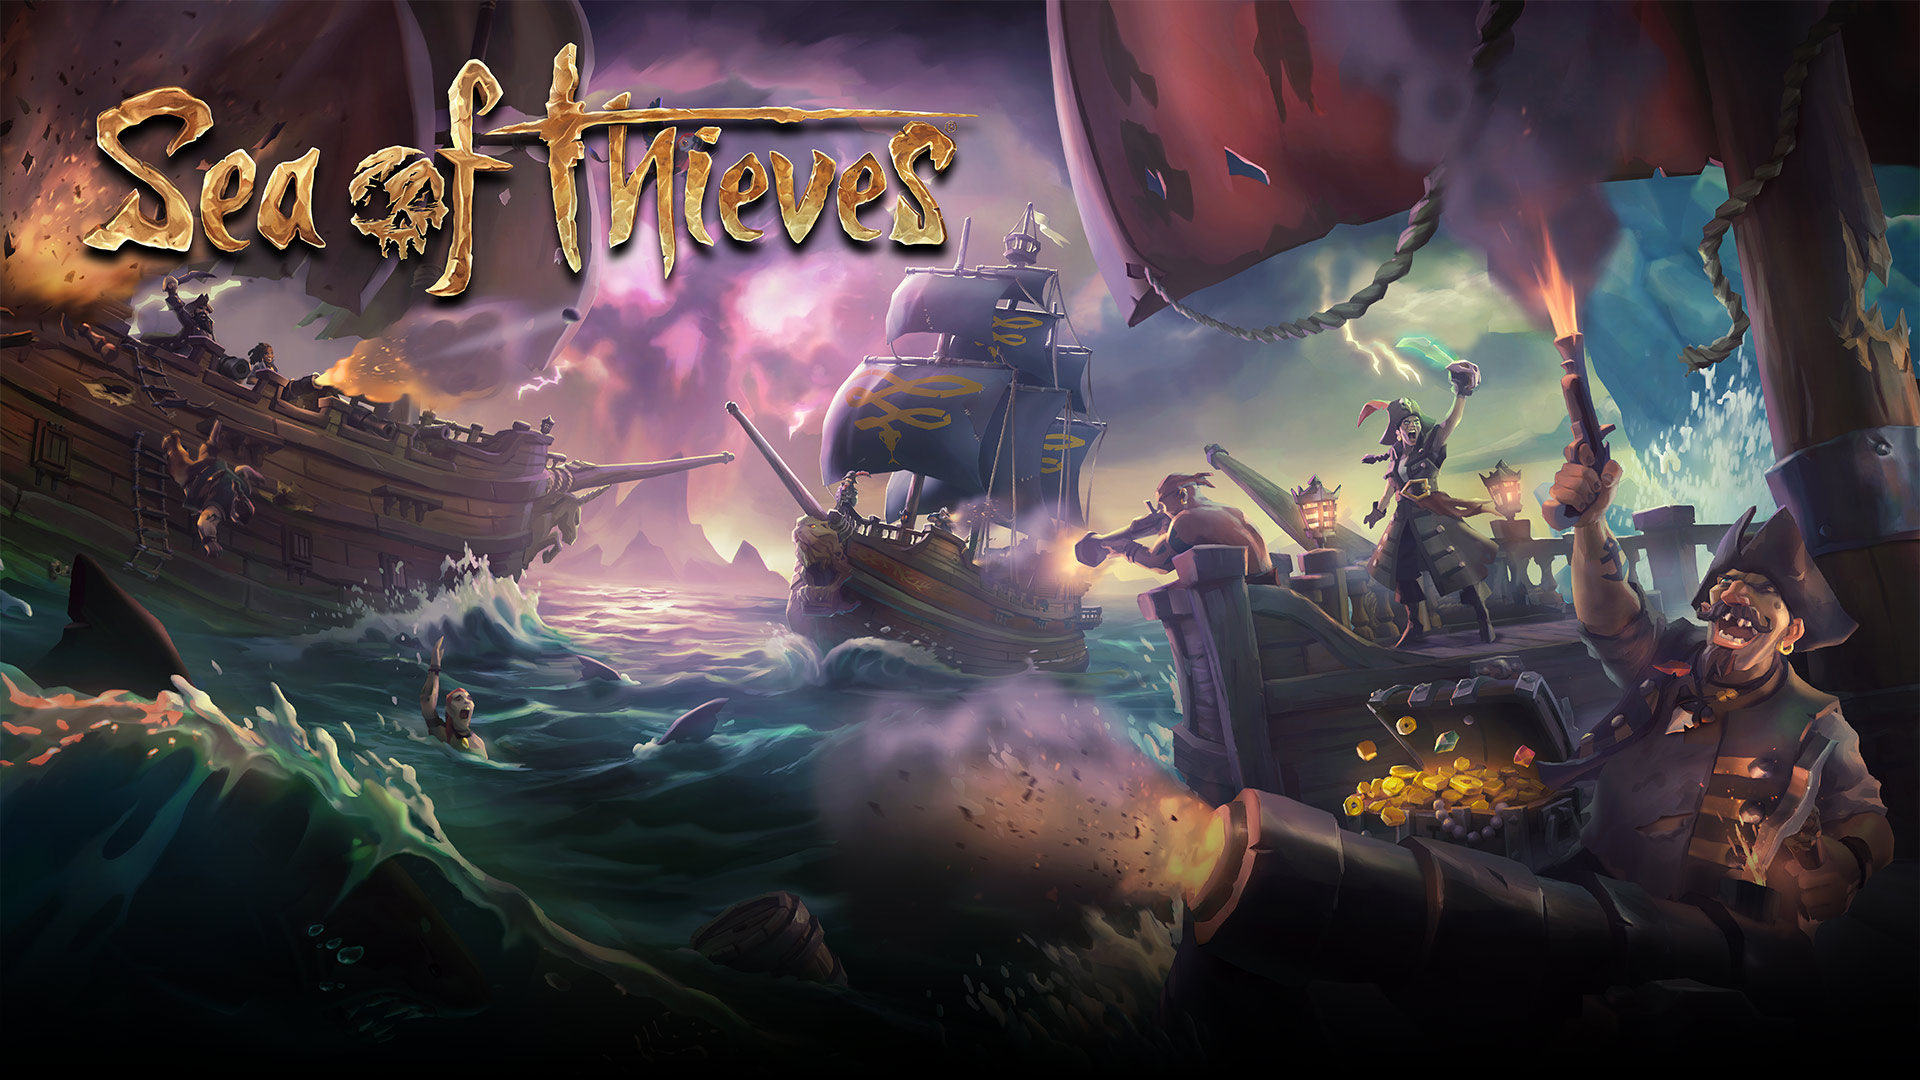 Sea of Thieves multiplayer details""